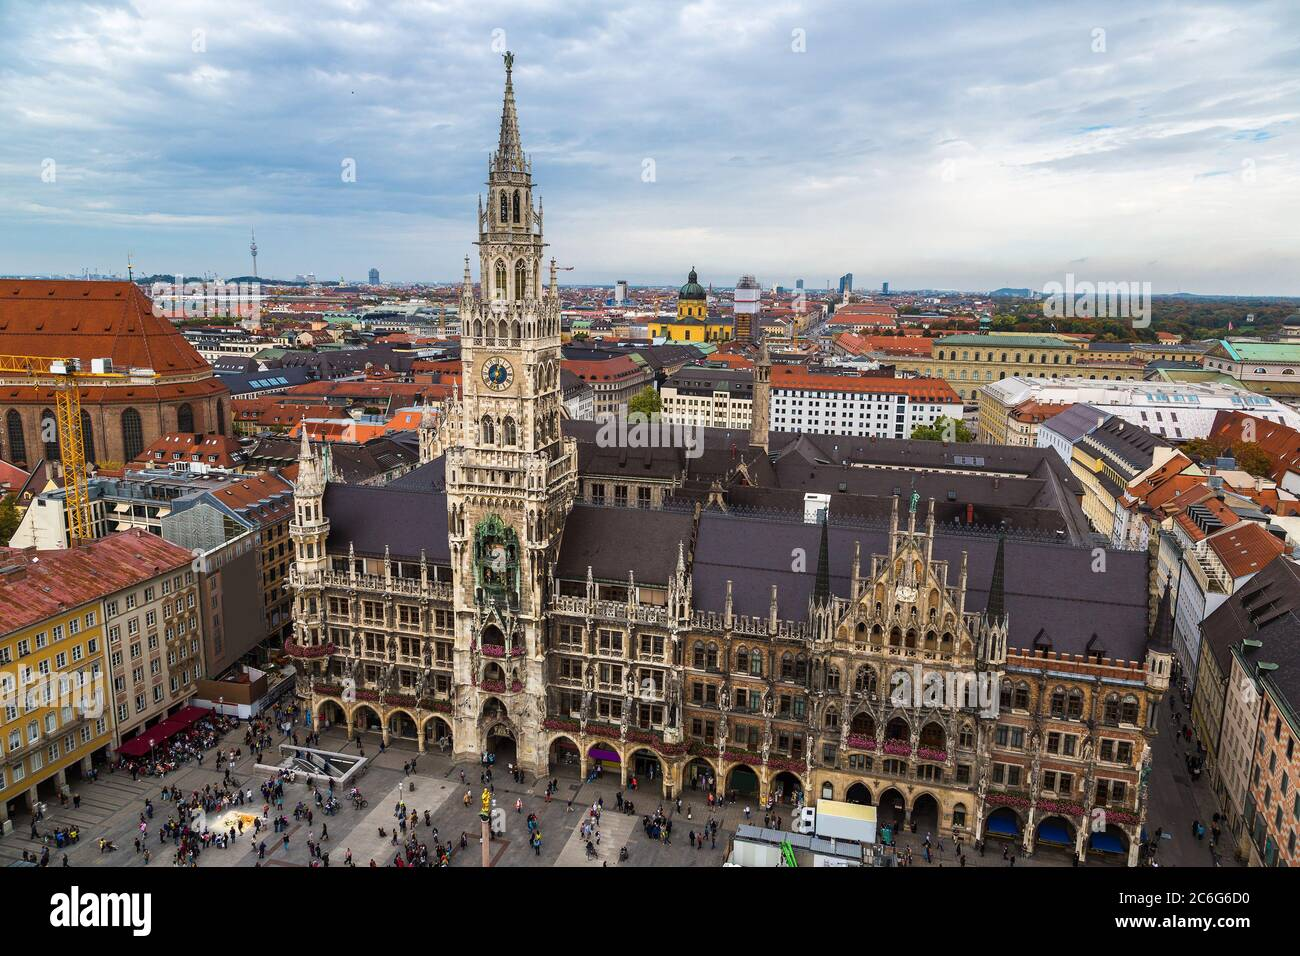 Aerial view on Marienplatz town hall in Munich, Germany Stock Photo